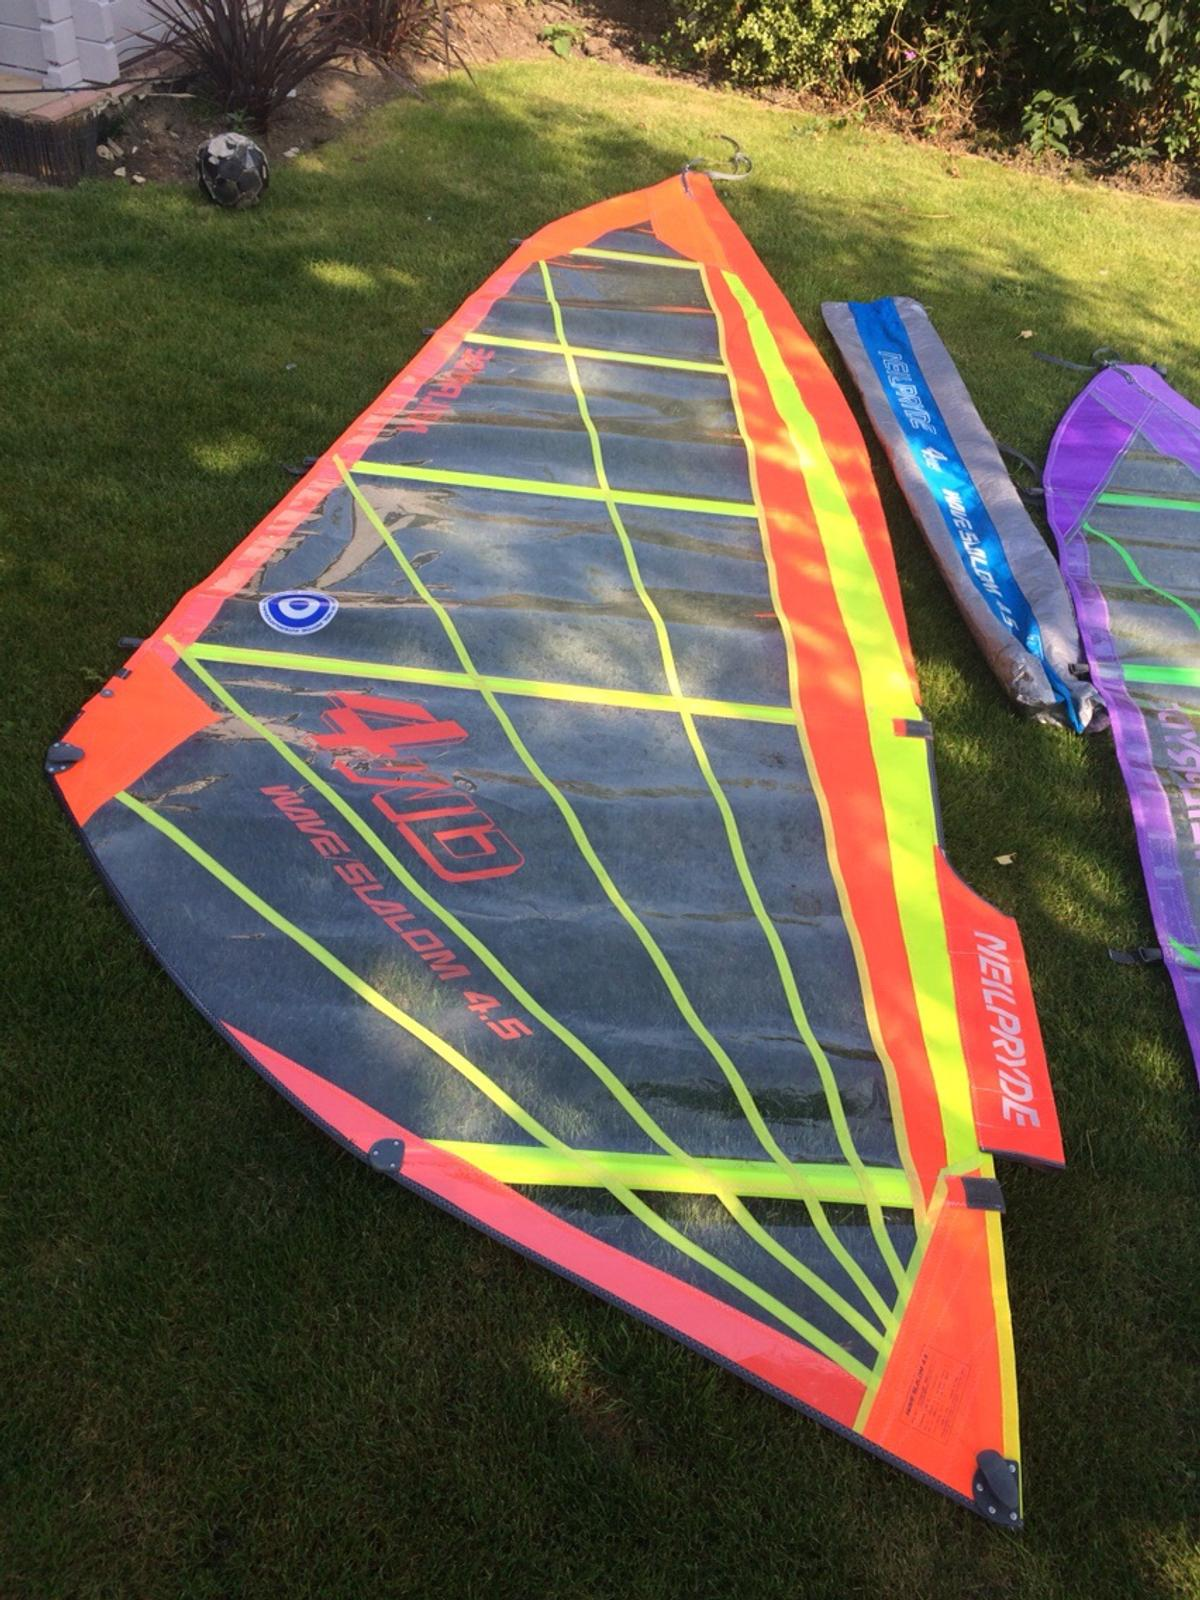 F2 windsurf board with two Neil pryde sails  in KT23 Bookham